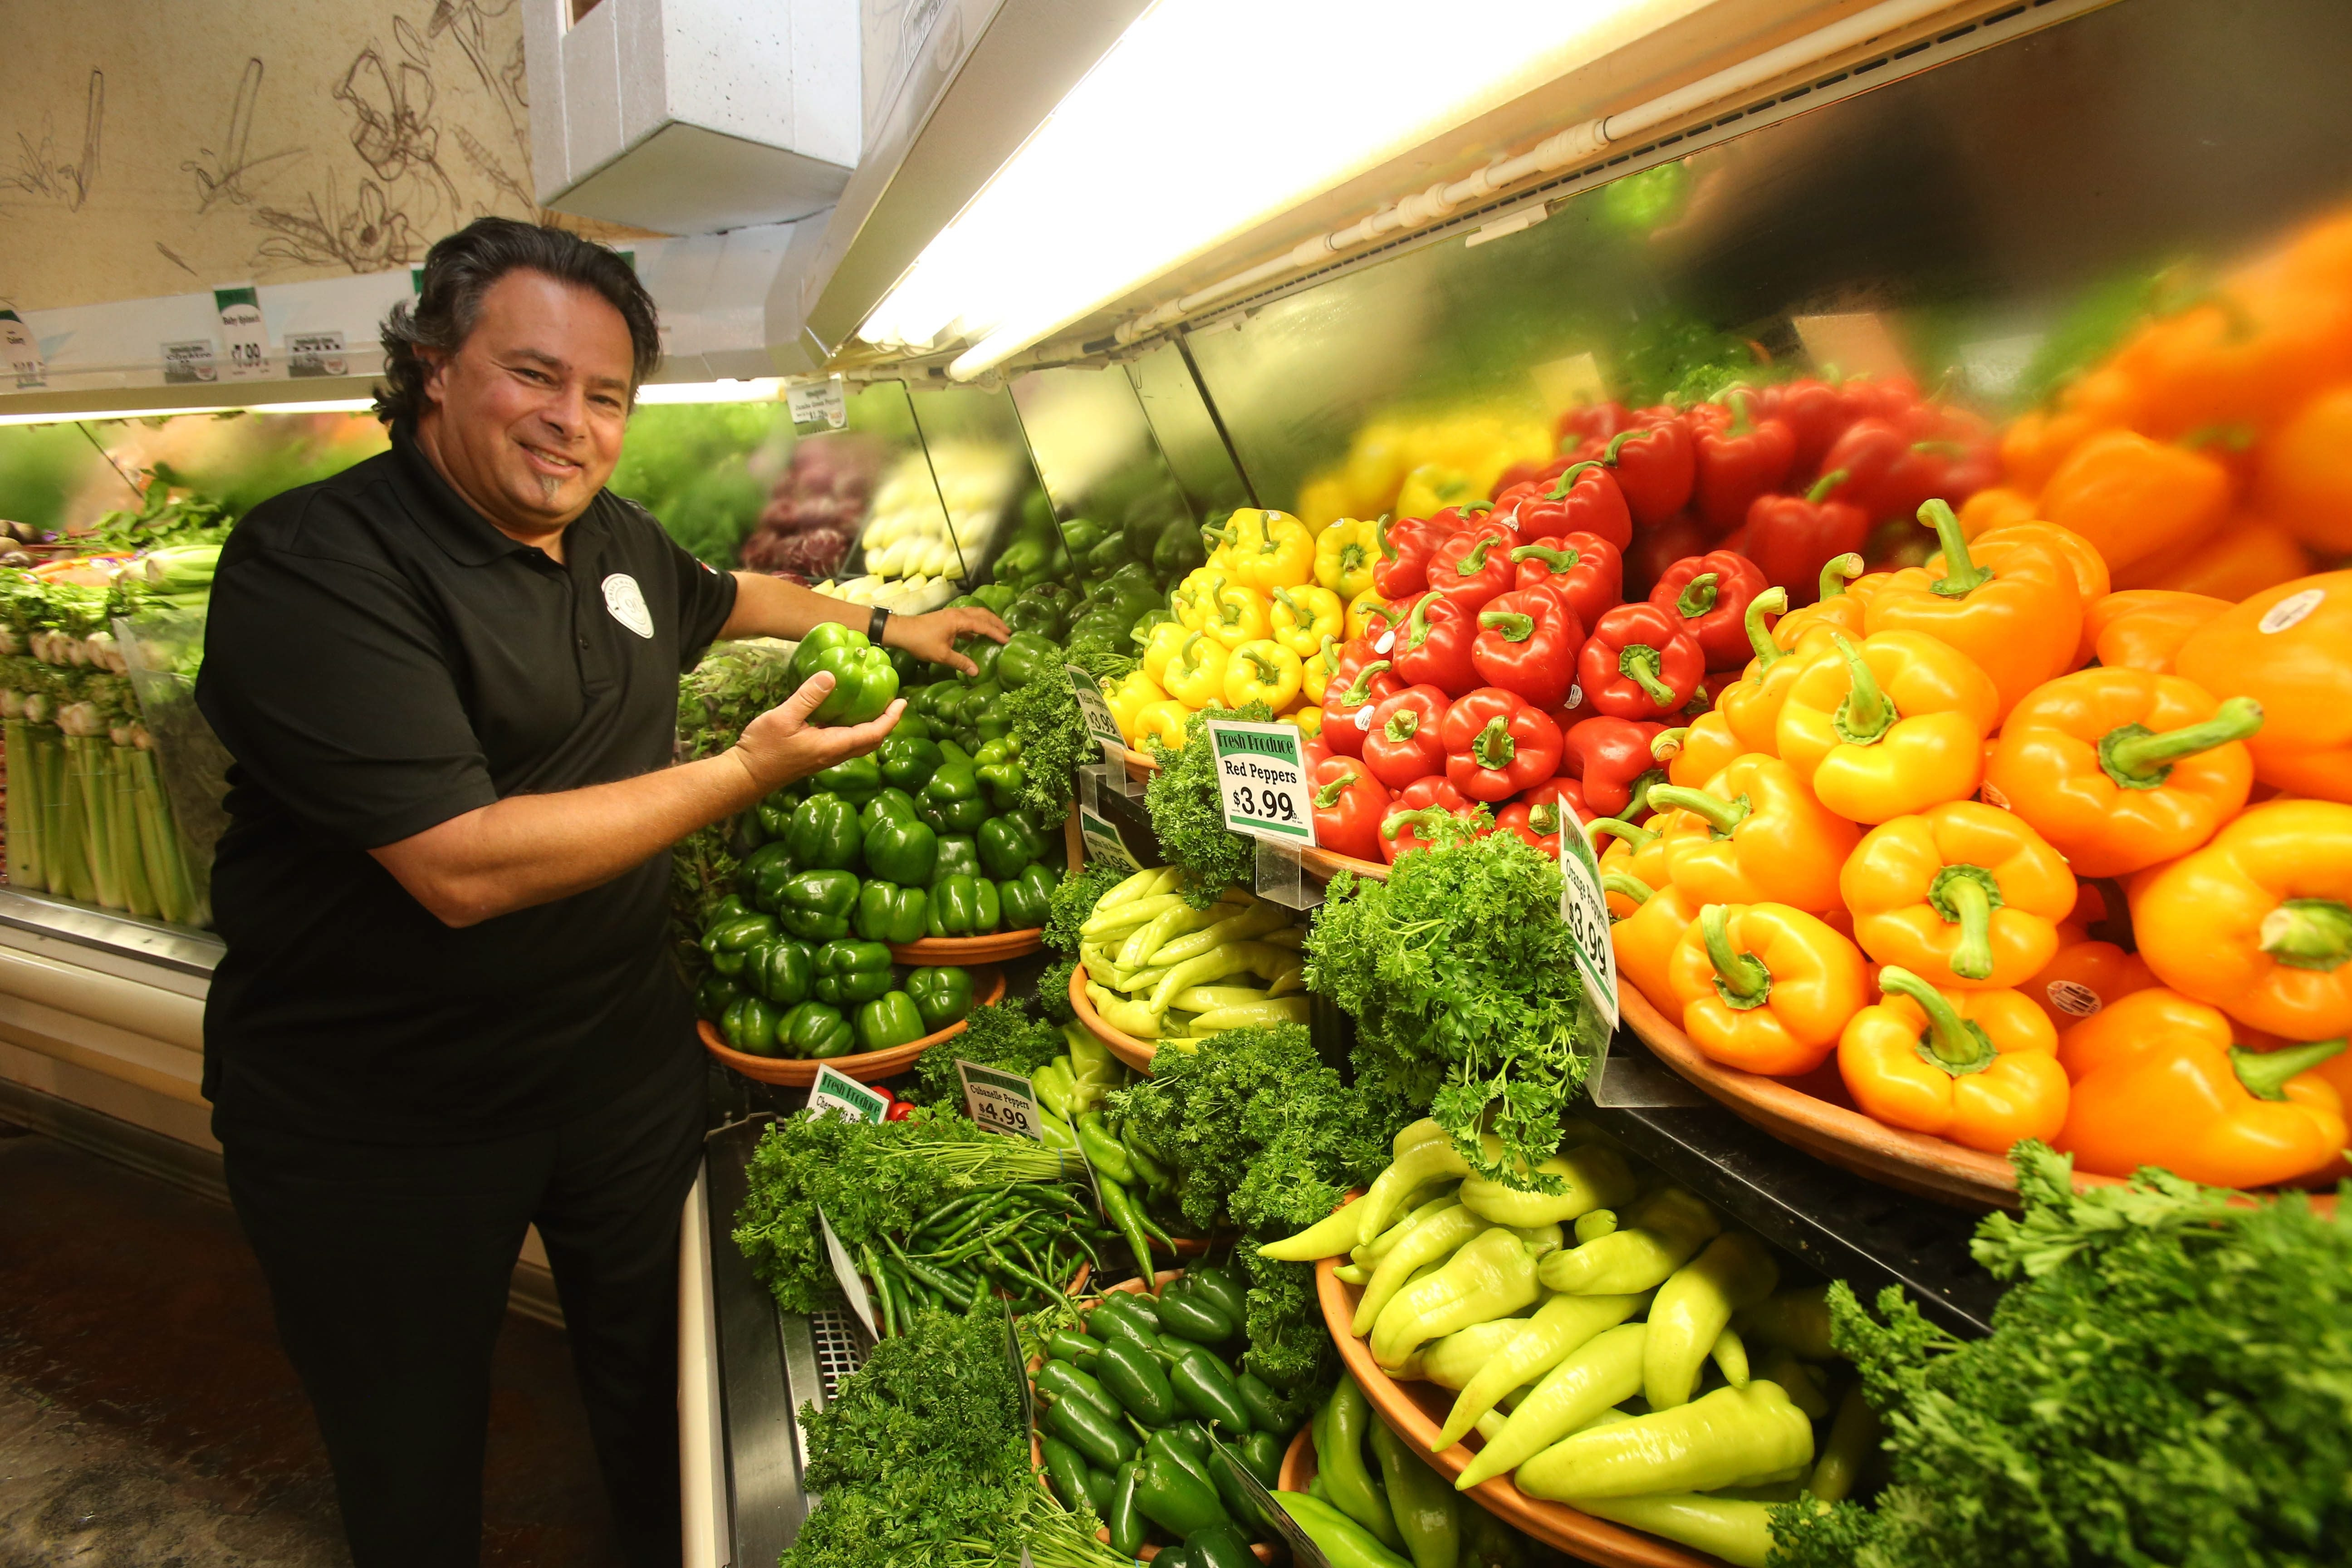 Eating more healthy foods could help reduce obesity rates among the 47 million Americans who receive SNAP benefits.